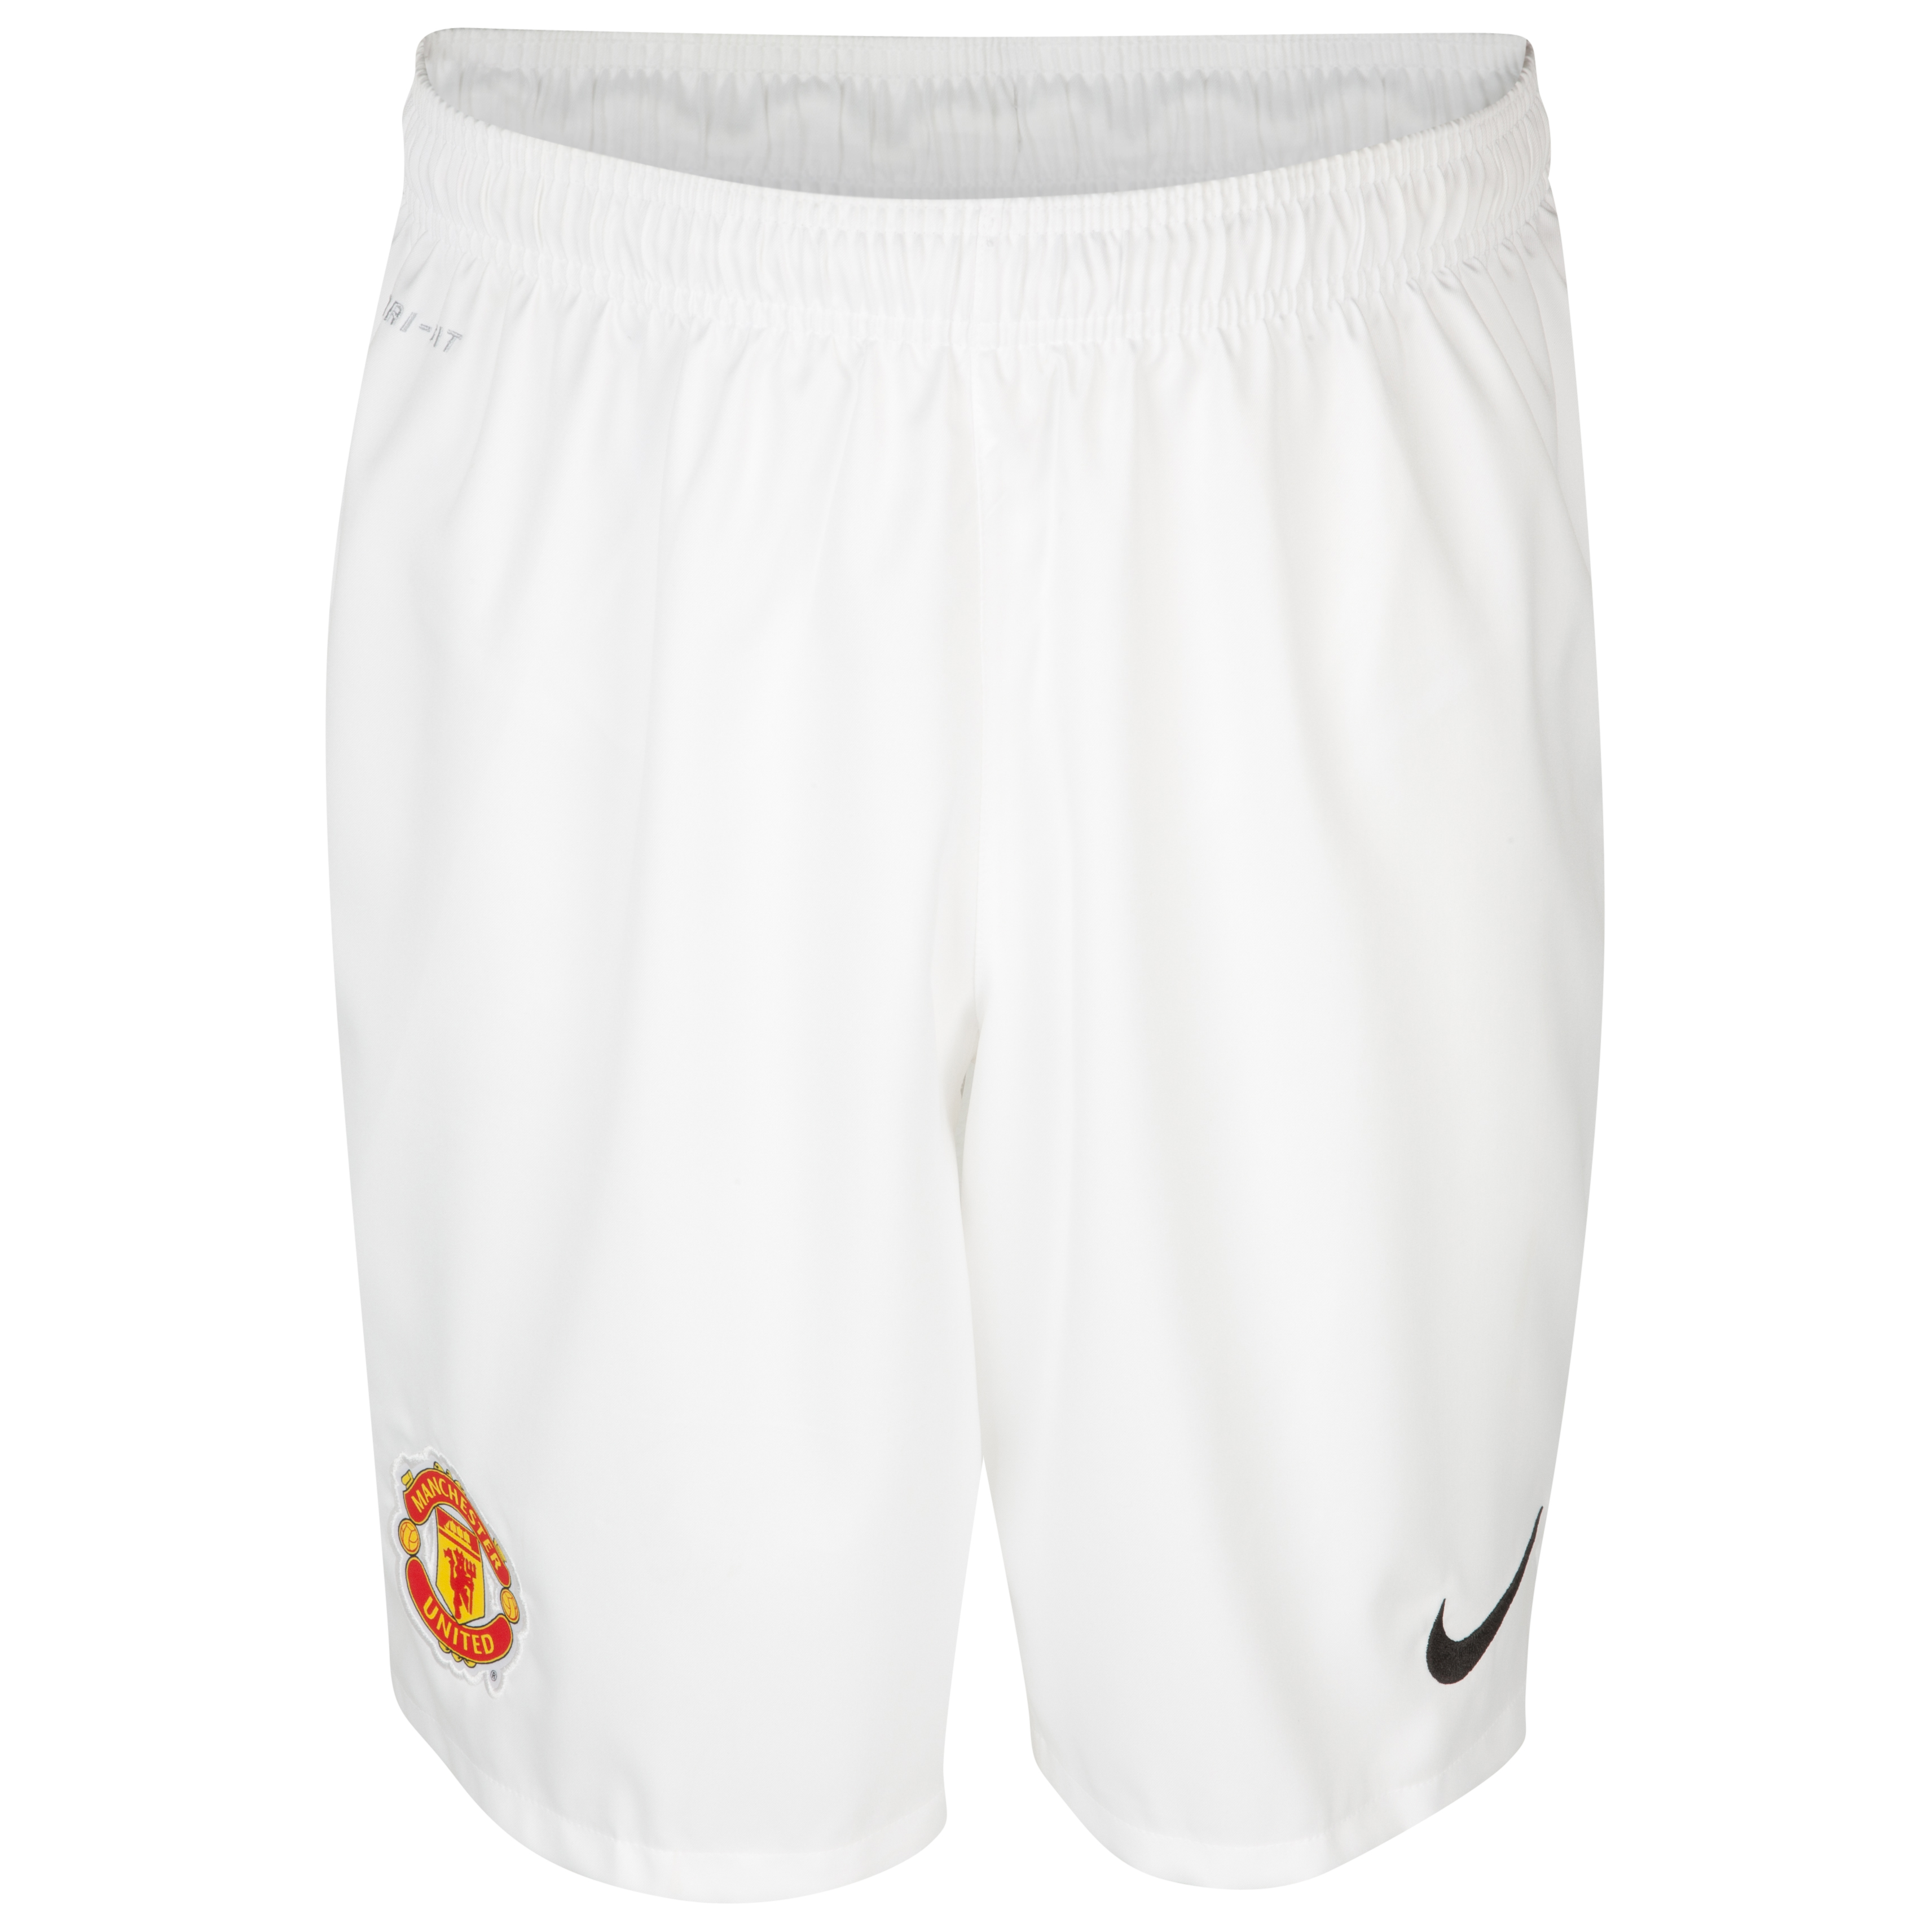 Manchester United Home Shorts 2013/14